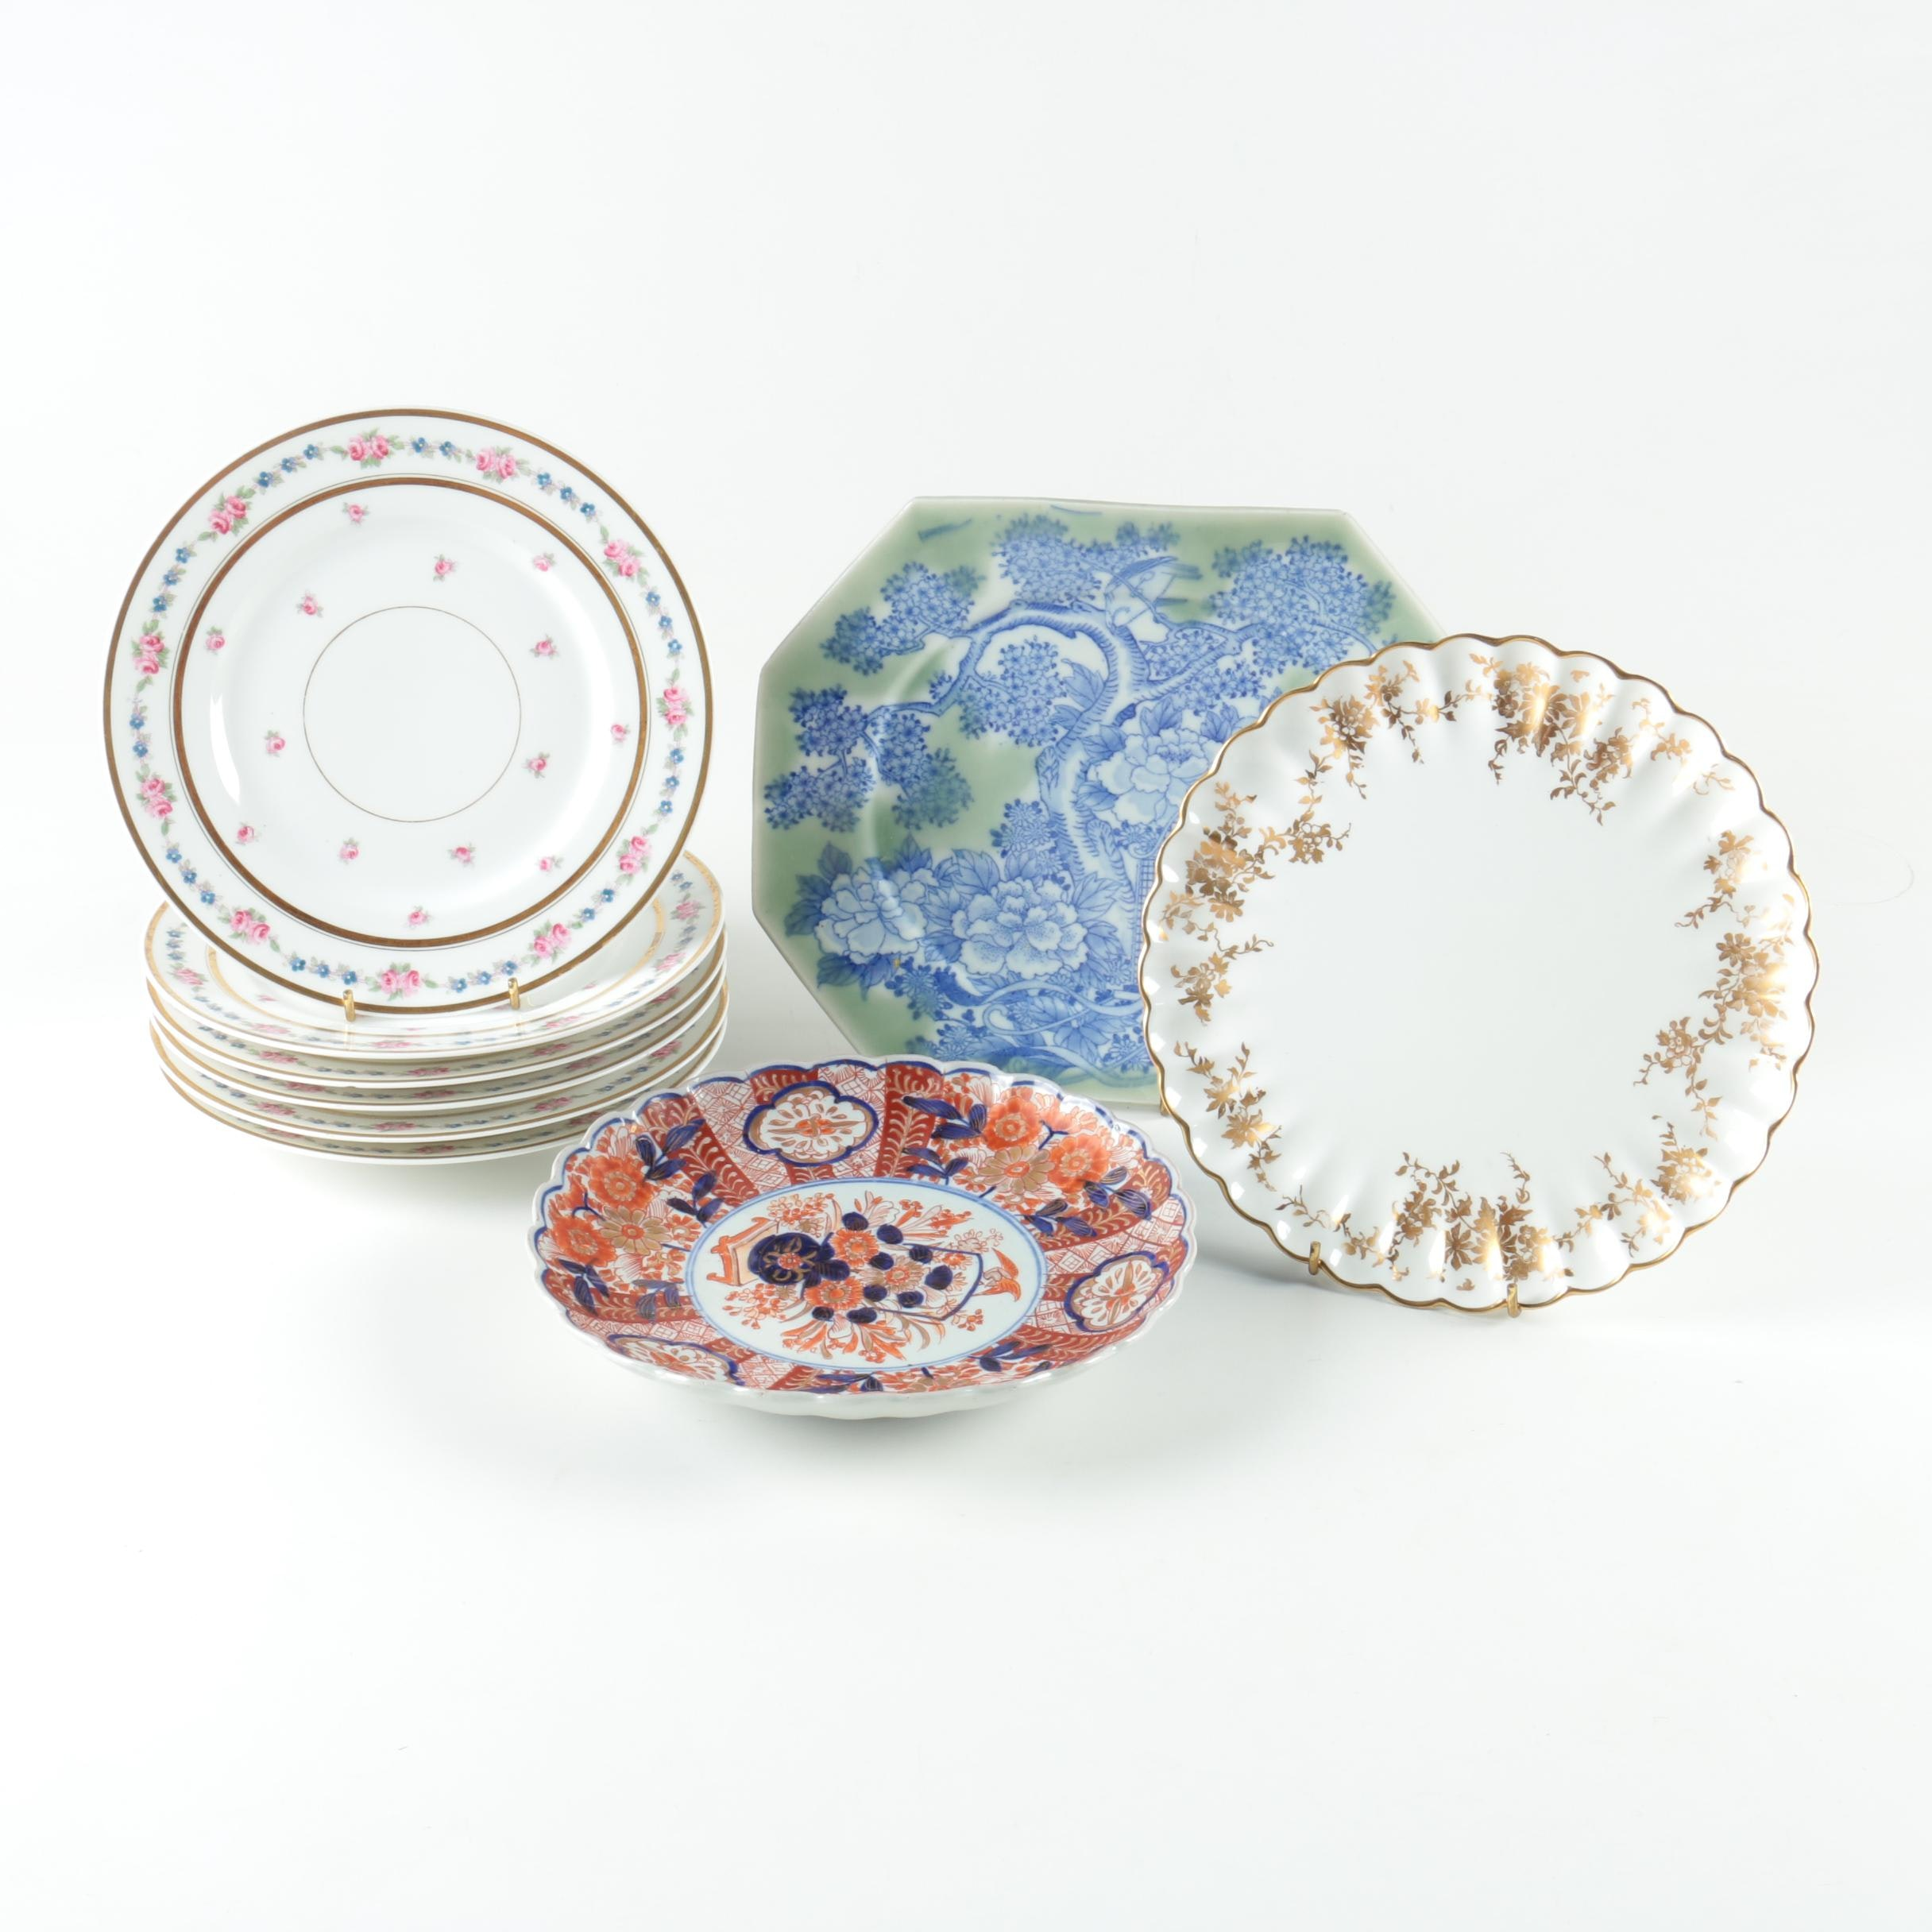 Porcelain Plates Featuring Staffordshire